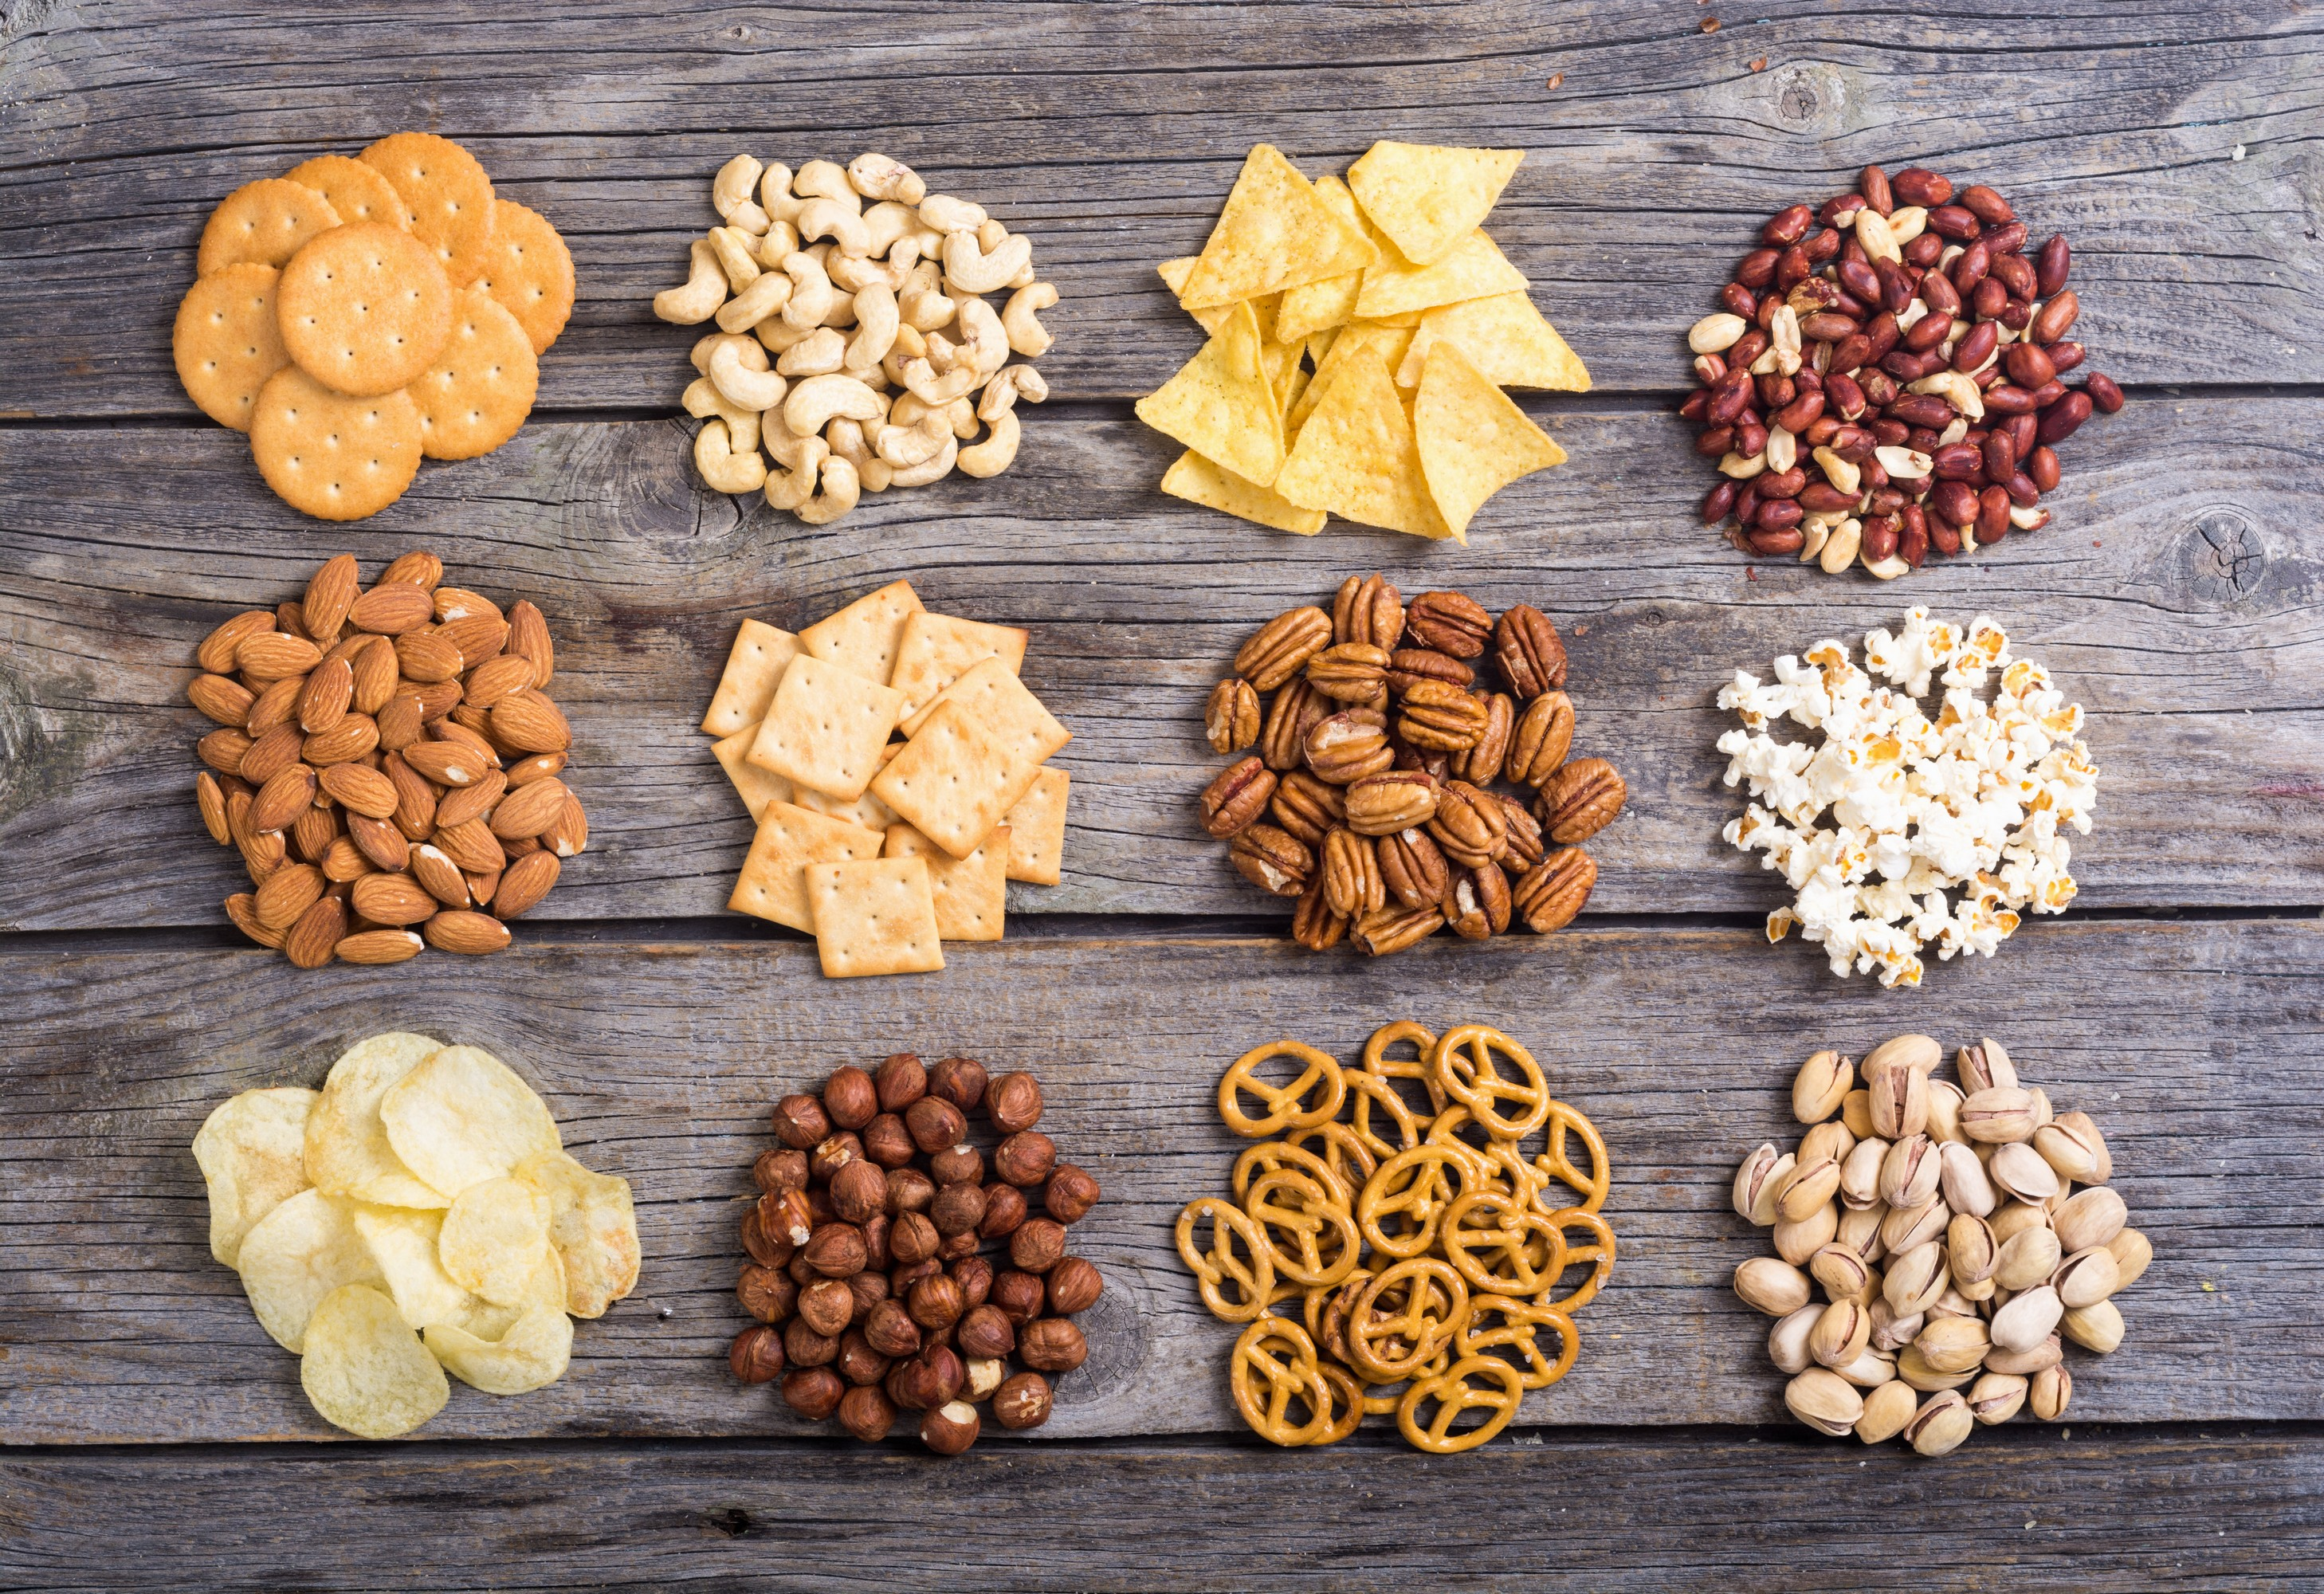 Finding Healthy Snacks in Los Angeles Break Rooms - First Class Coffee  Service Blog